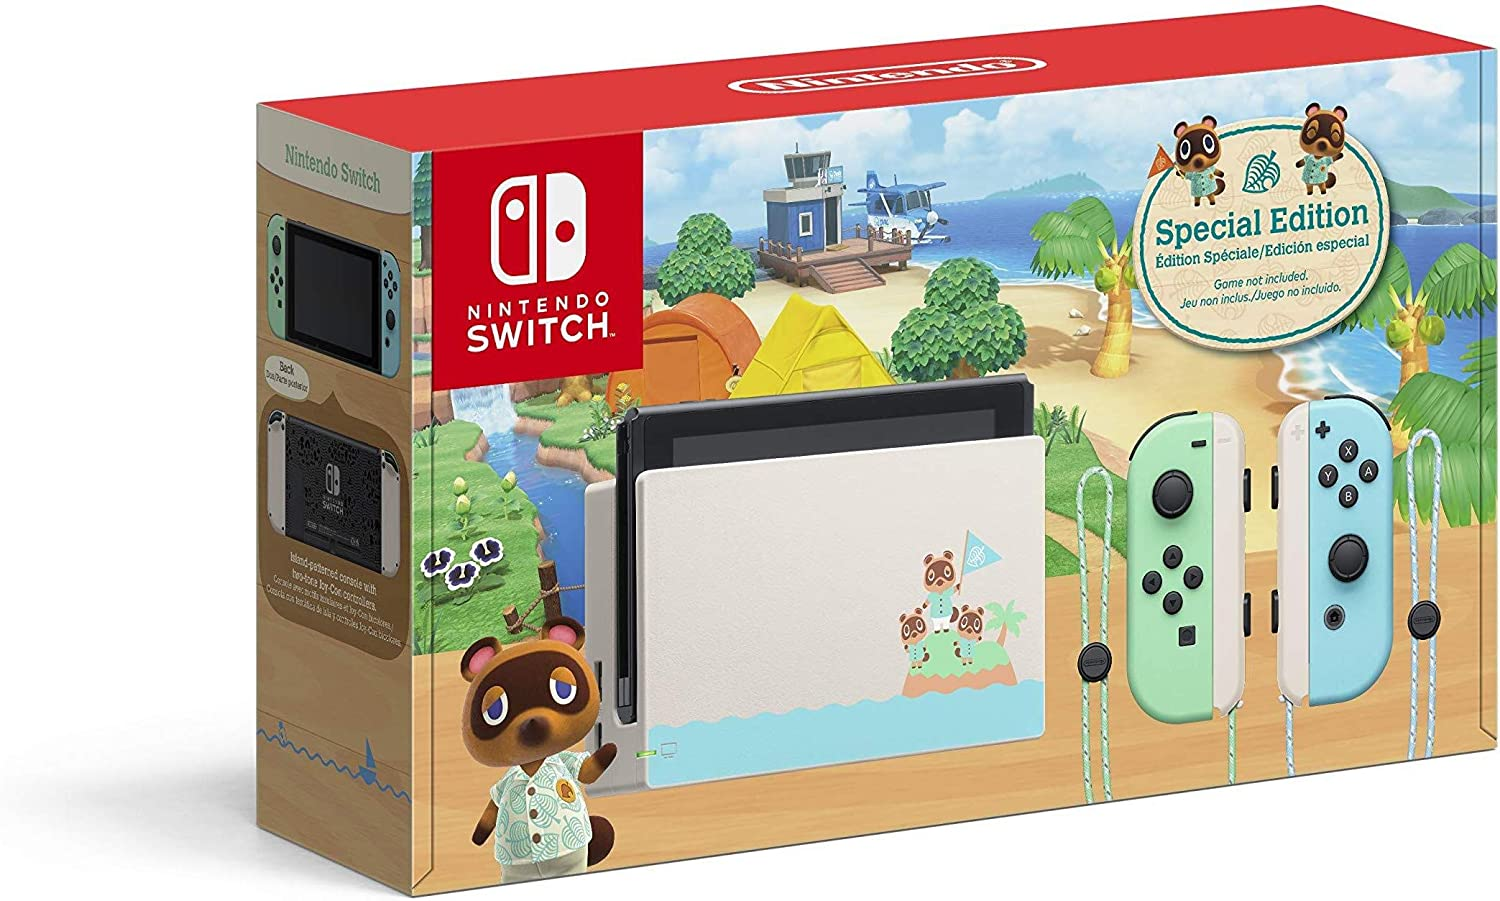 Nintendo Switch 1.1 Animal Crossing